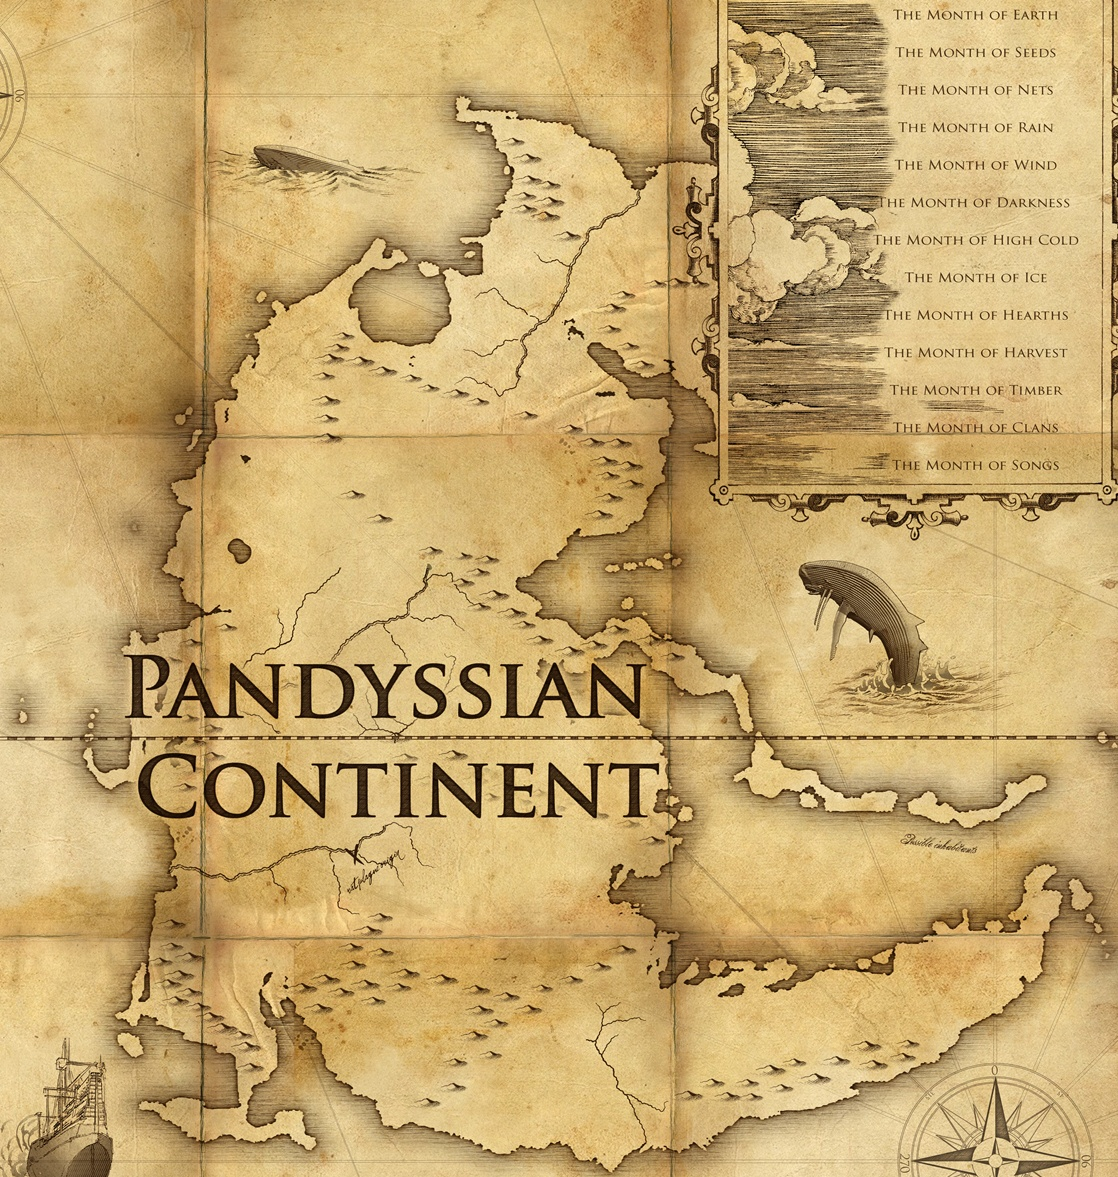 Pandyssian continent dishonored wiki fandom powered by wikia pandyssian continent gumiabroncs Gallery